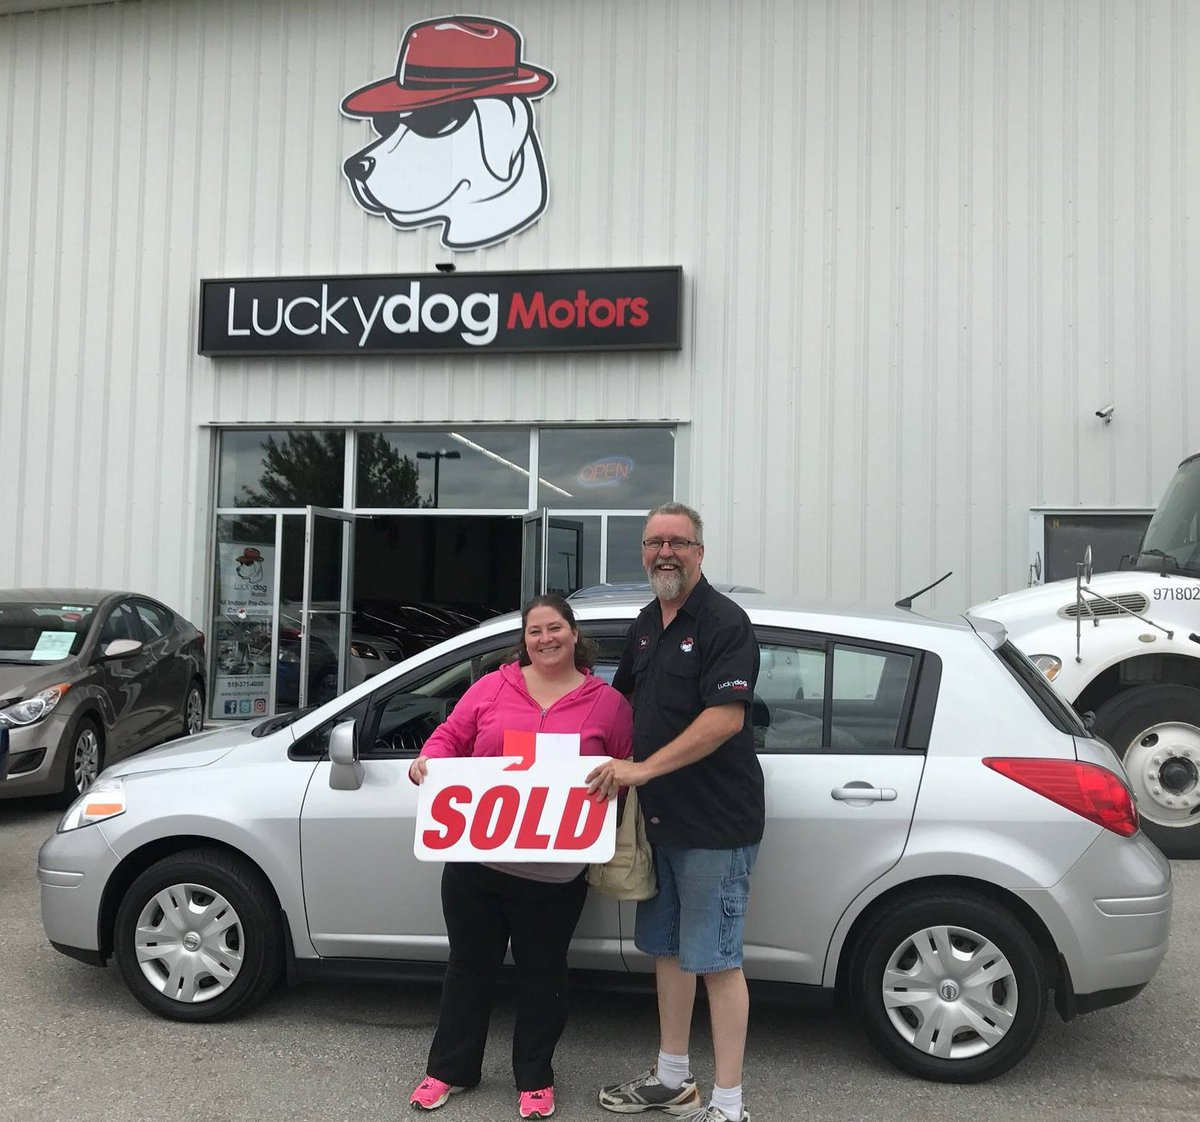 Congrats to Toni Hamilton on your new Nissan Versa we appreciate your business. #newcar #nissan #versa #southampton #owensound <br>http://pic.twitter.com/94Im2AByQo